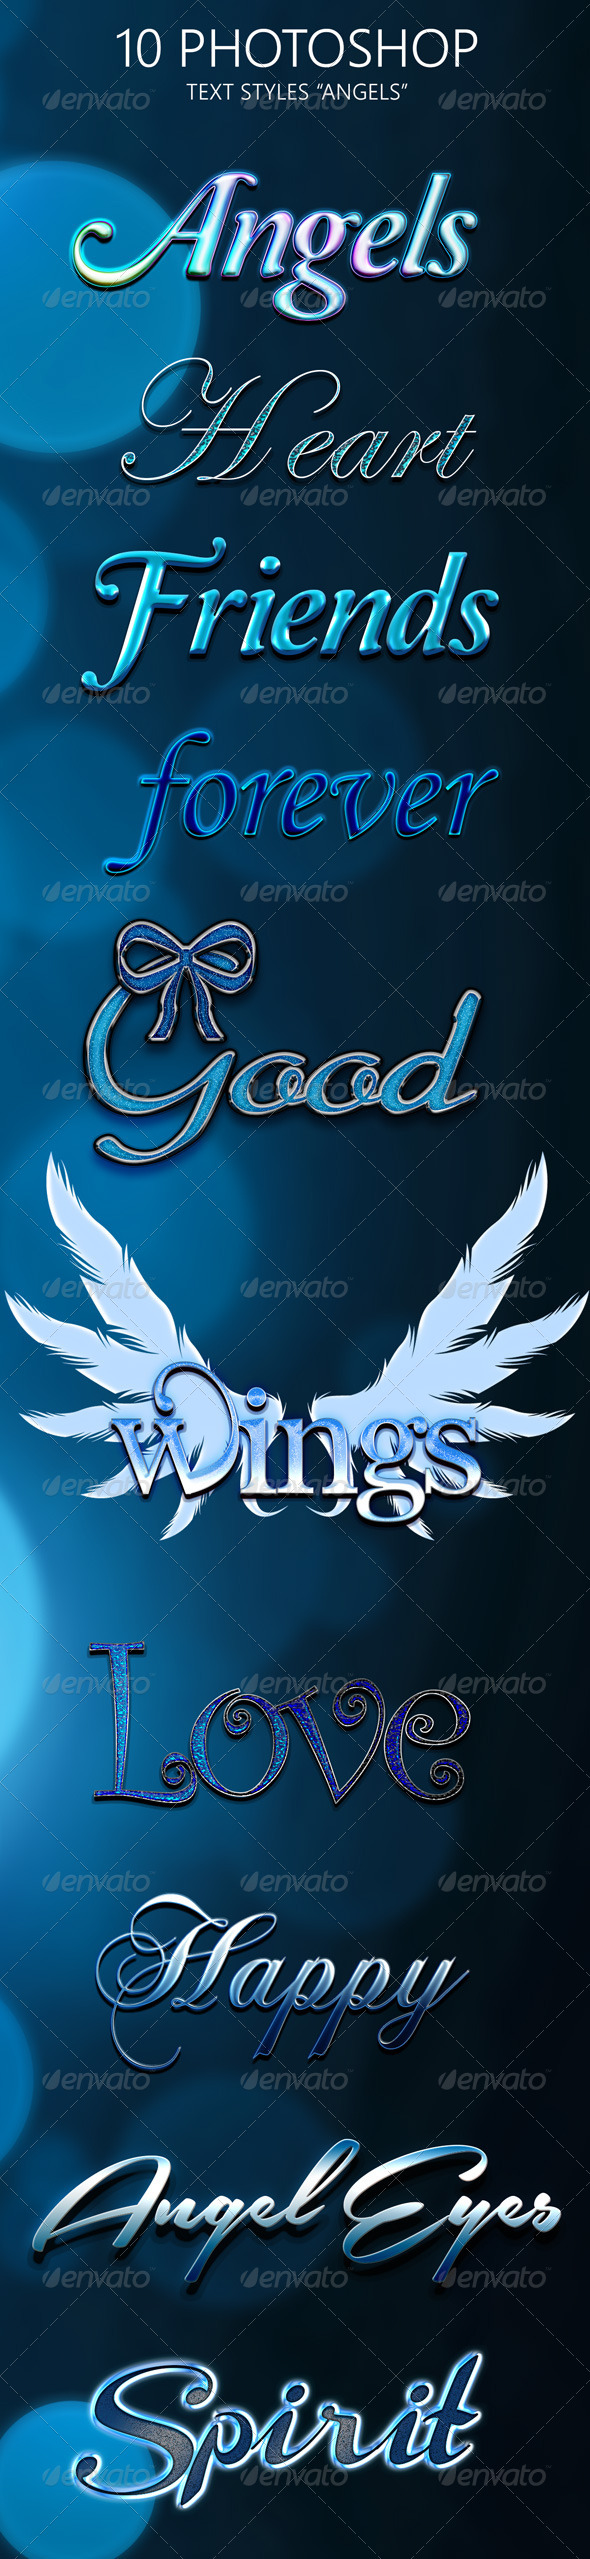 GraphicRiver 10 Photoshop Styles Angels 6681377